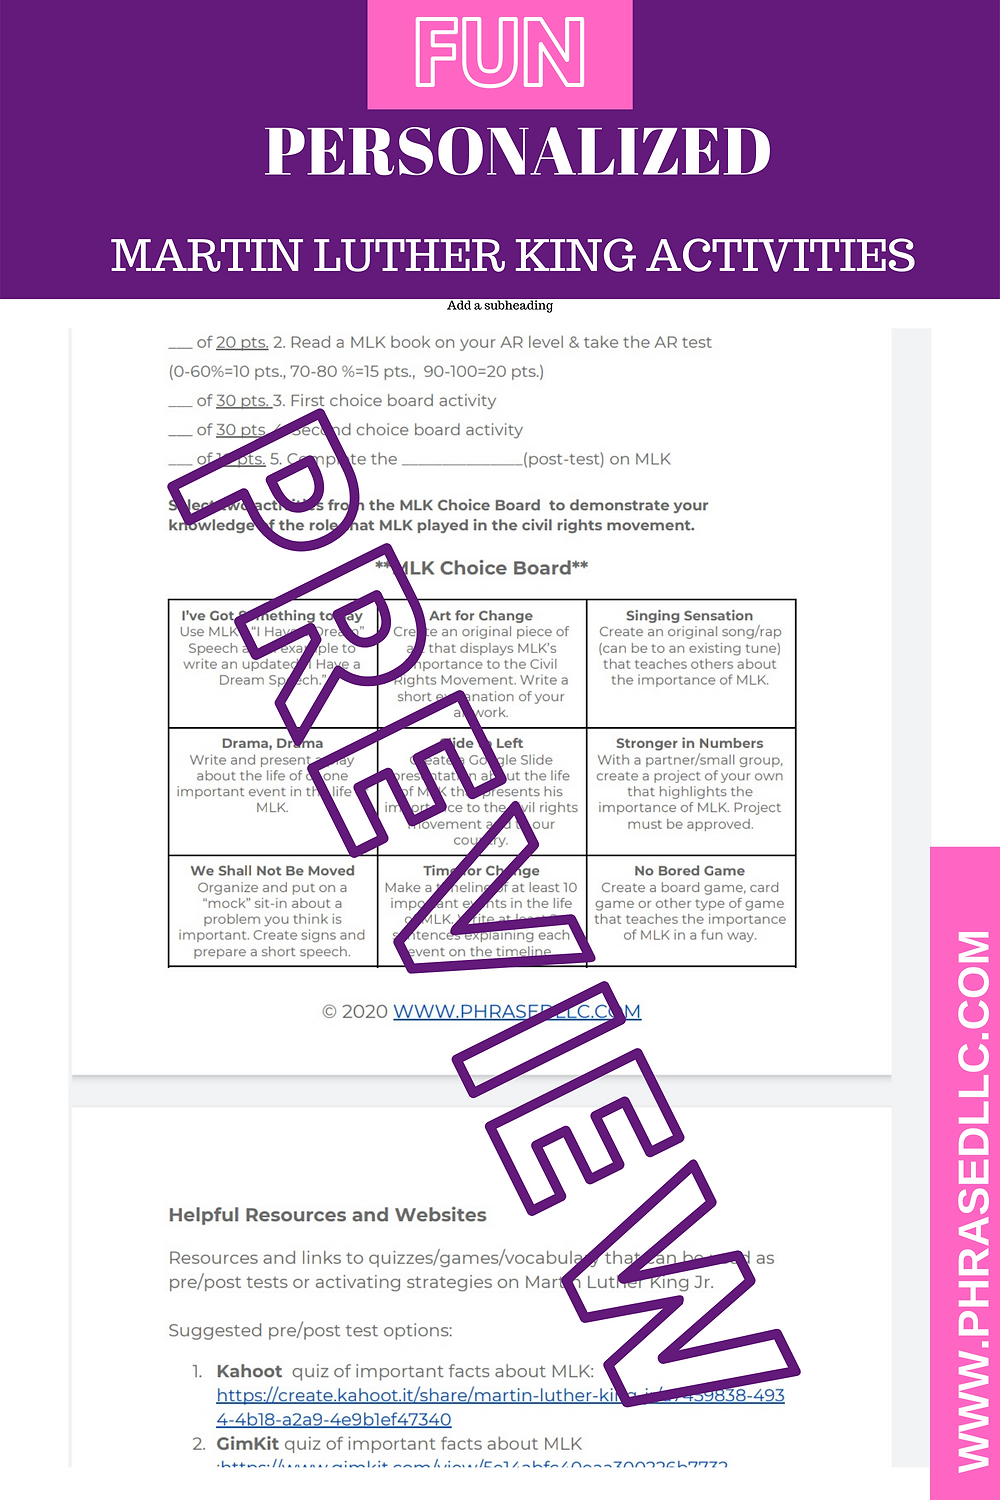 Games, practice and personalized activities to help students learn why Martin Luther King was important including facts, quotes, speeches, advocacy and civil rights movement activities.